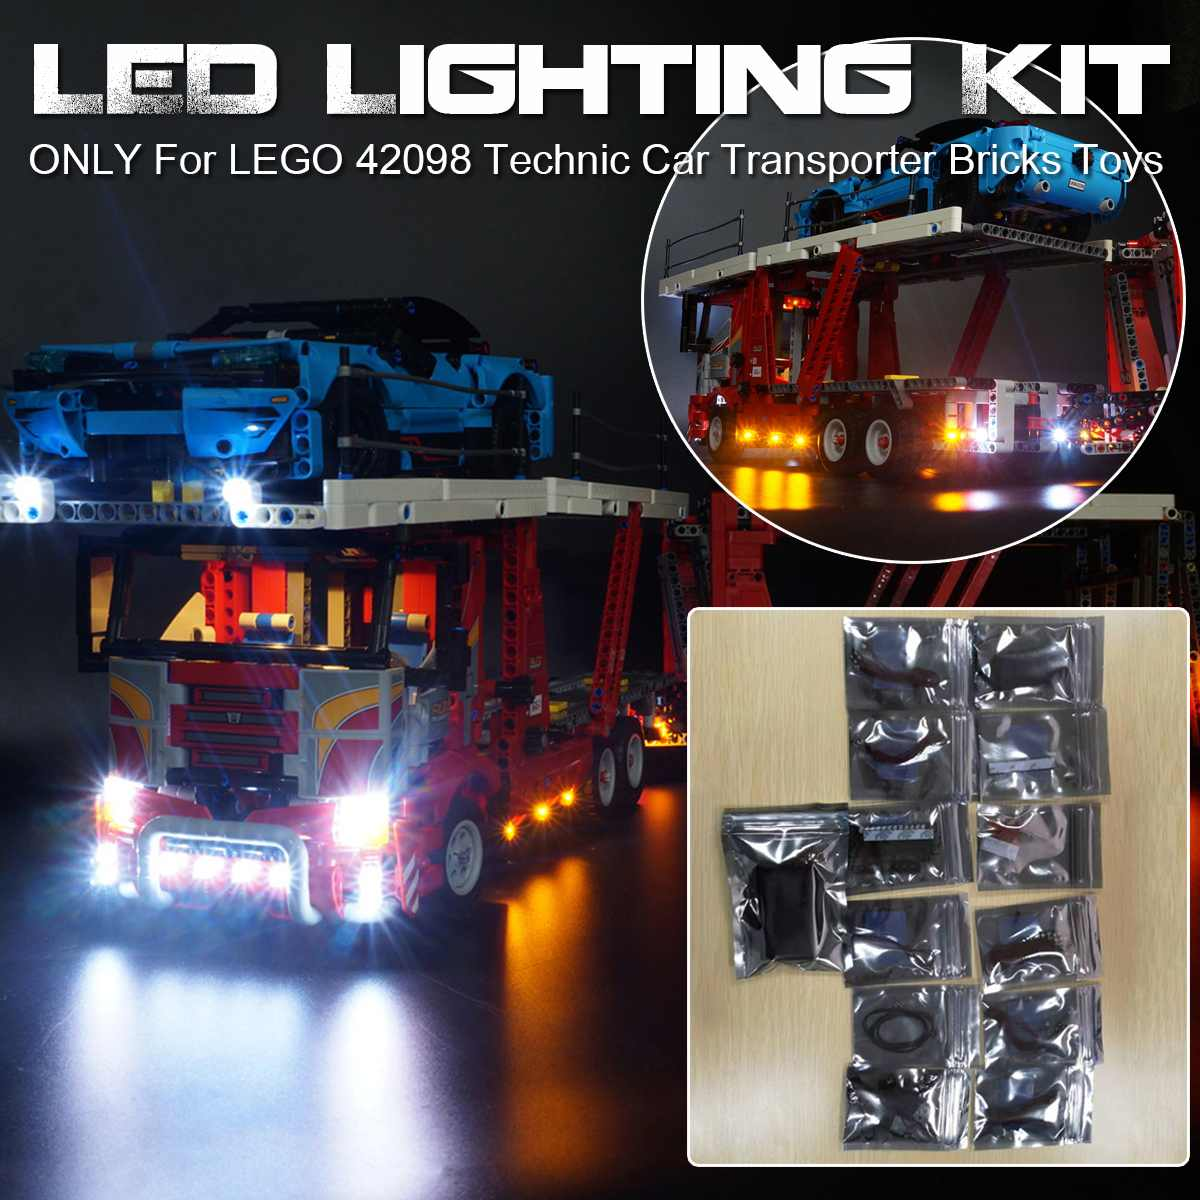 (No Included The Model) USB Powered LED Light Lighting Kit ONLY For LEGO 42098 Technic Car Transporter Beleuchtungs Bricks Toys